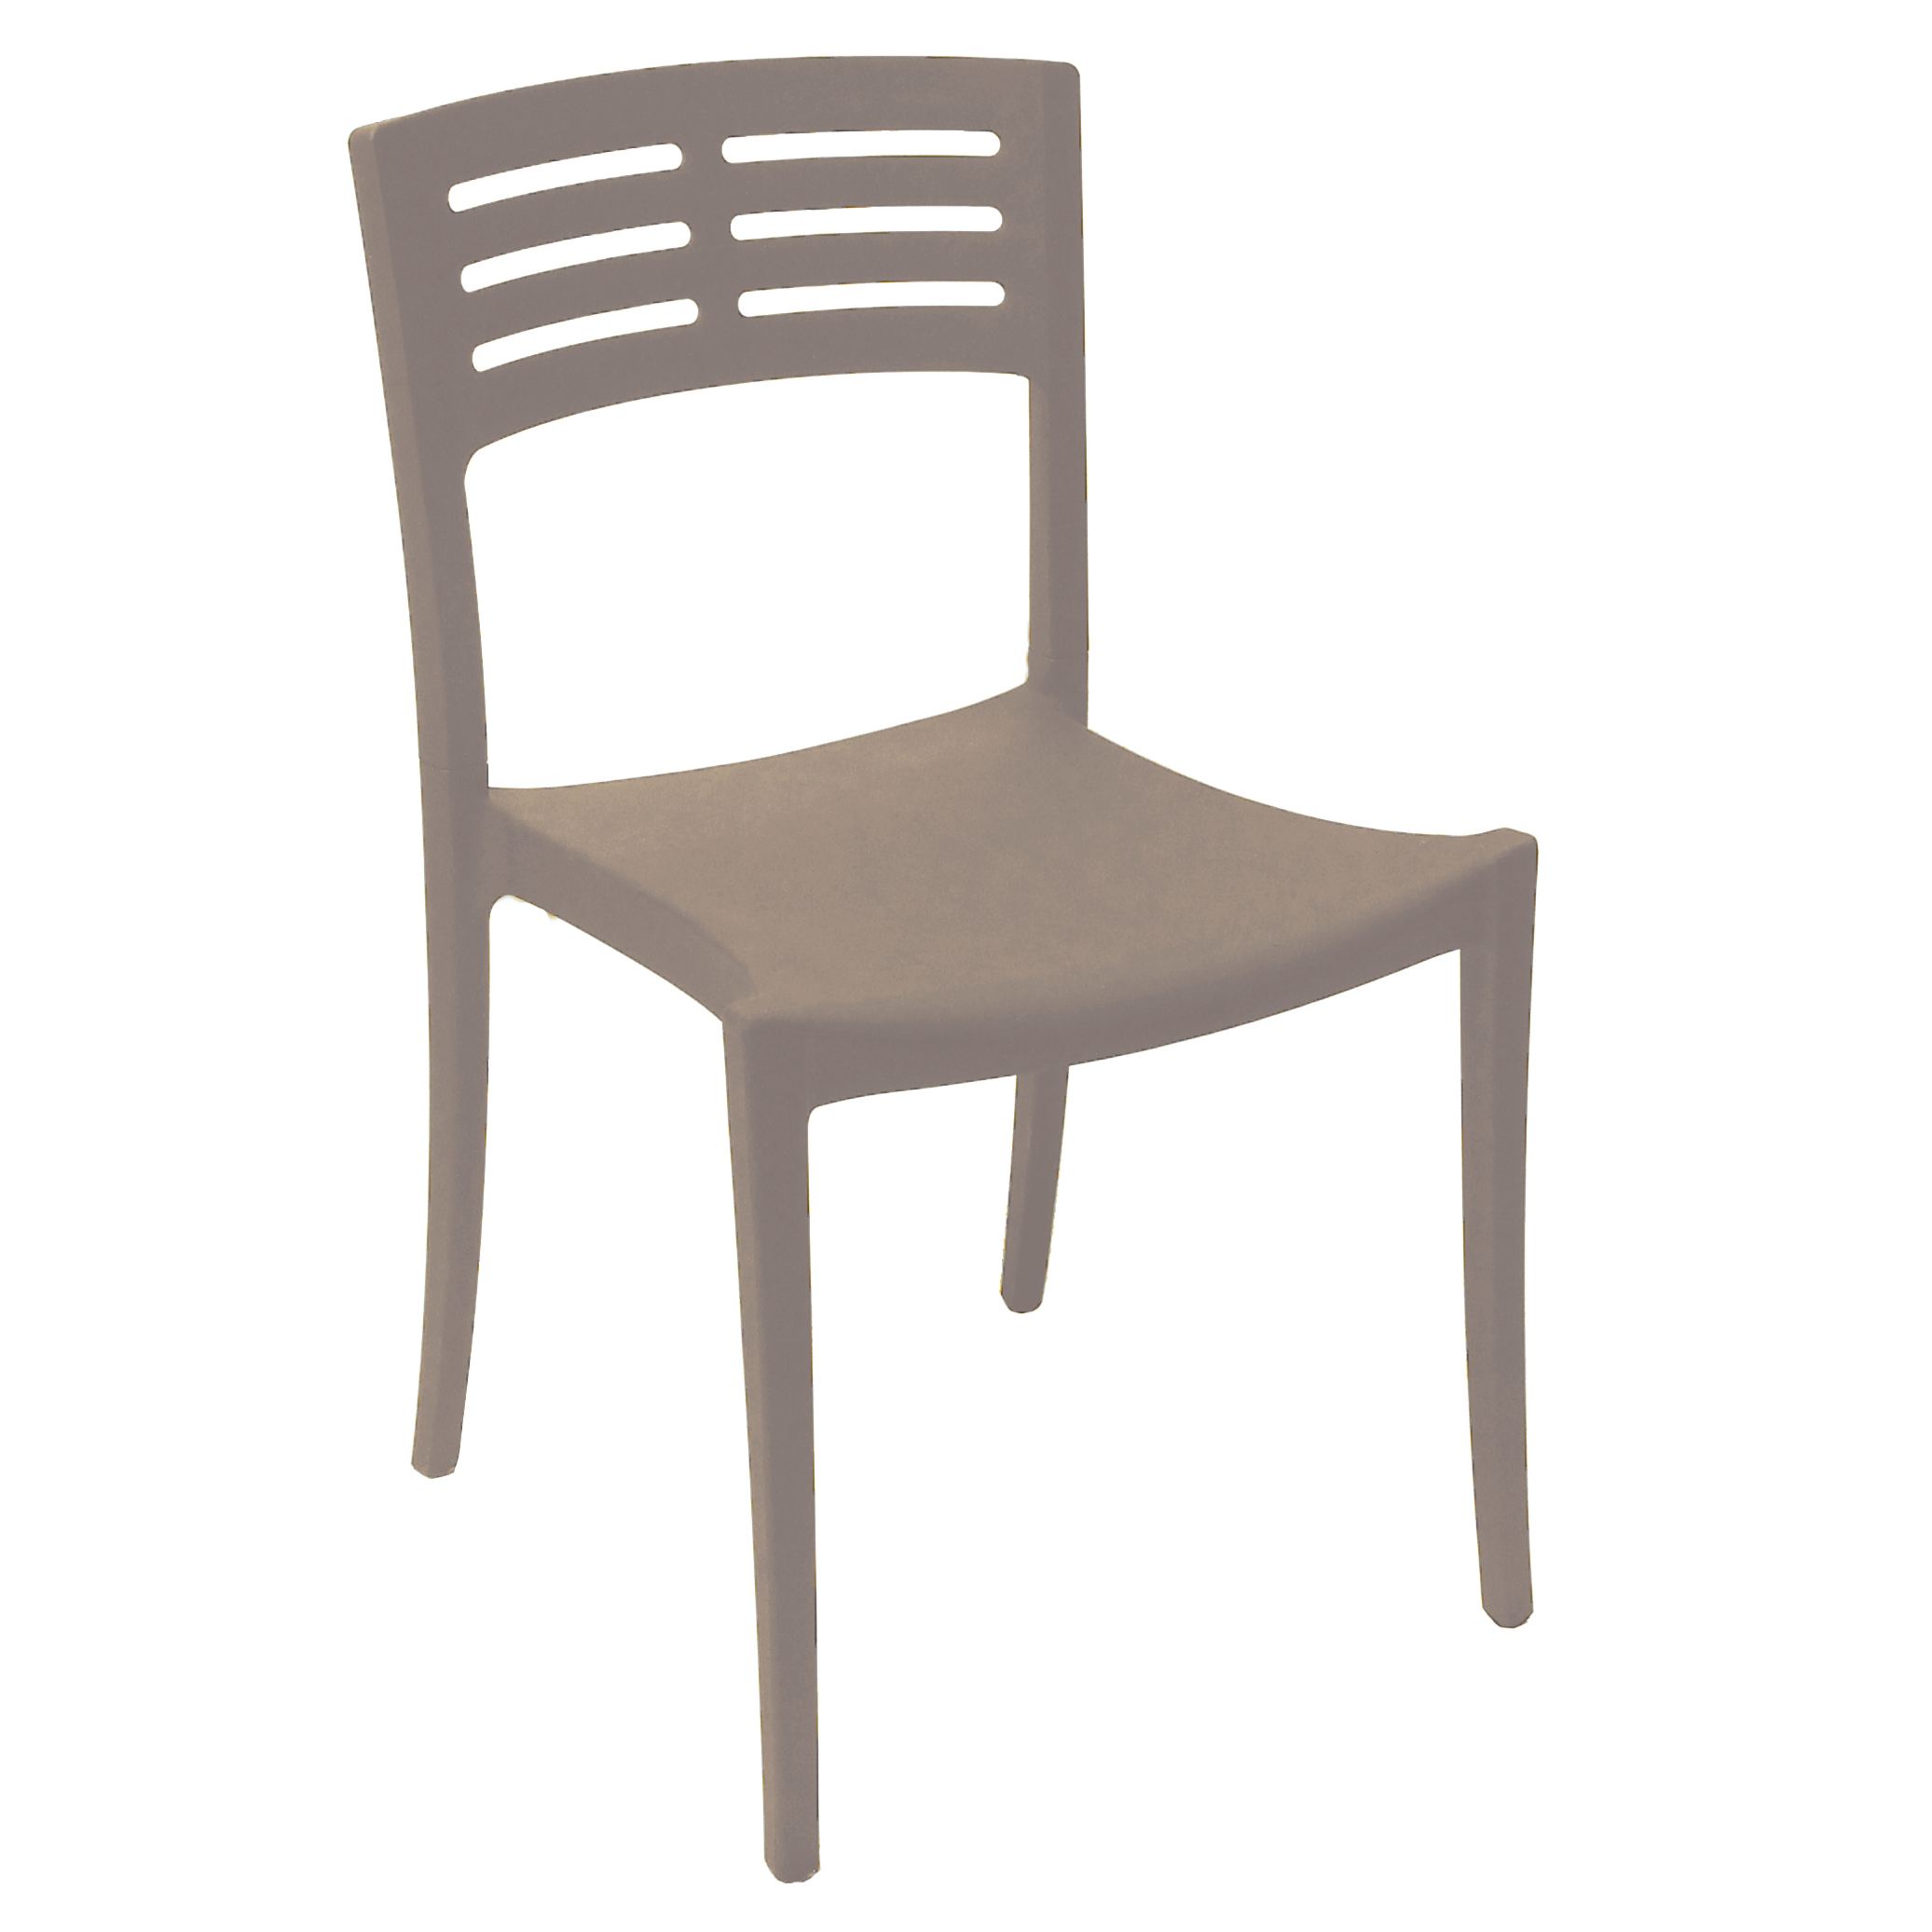 Grosfillex US738181 chair, side, stacking, outdoor